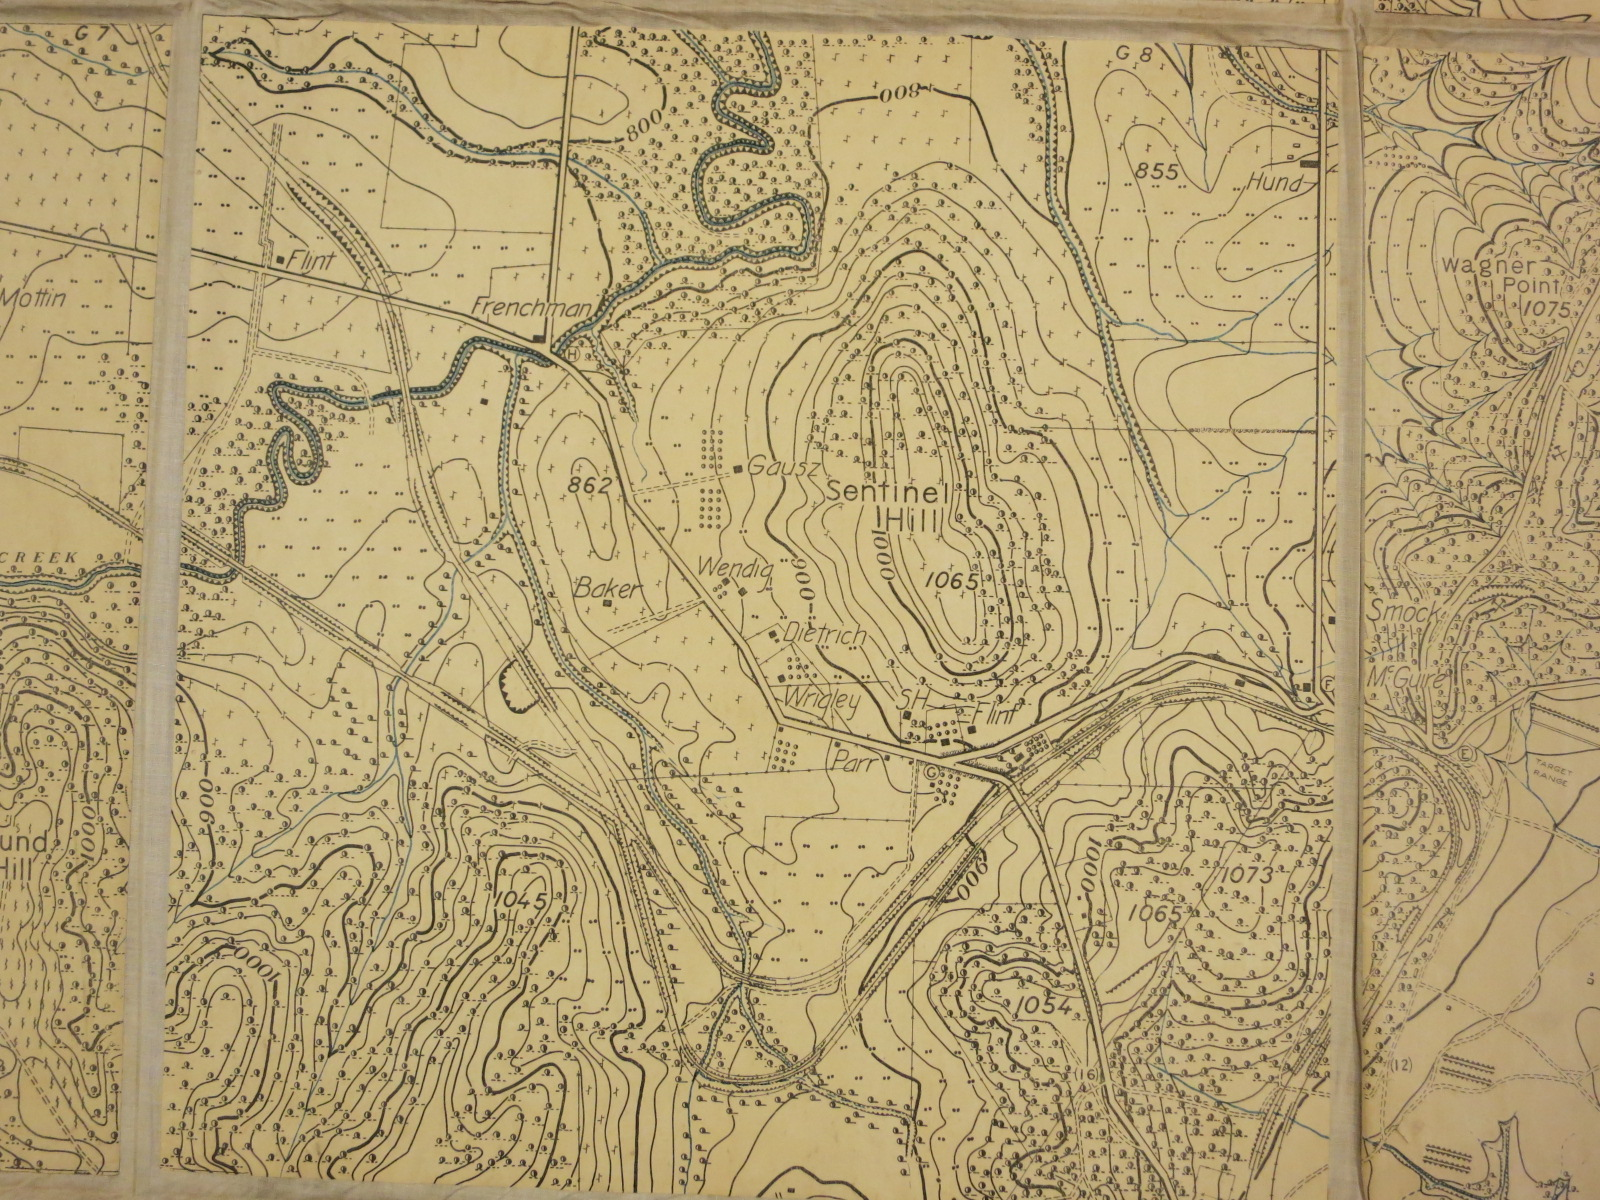 Sentinel Hill from Fort Leavenworth War Game Map | Map Library ...